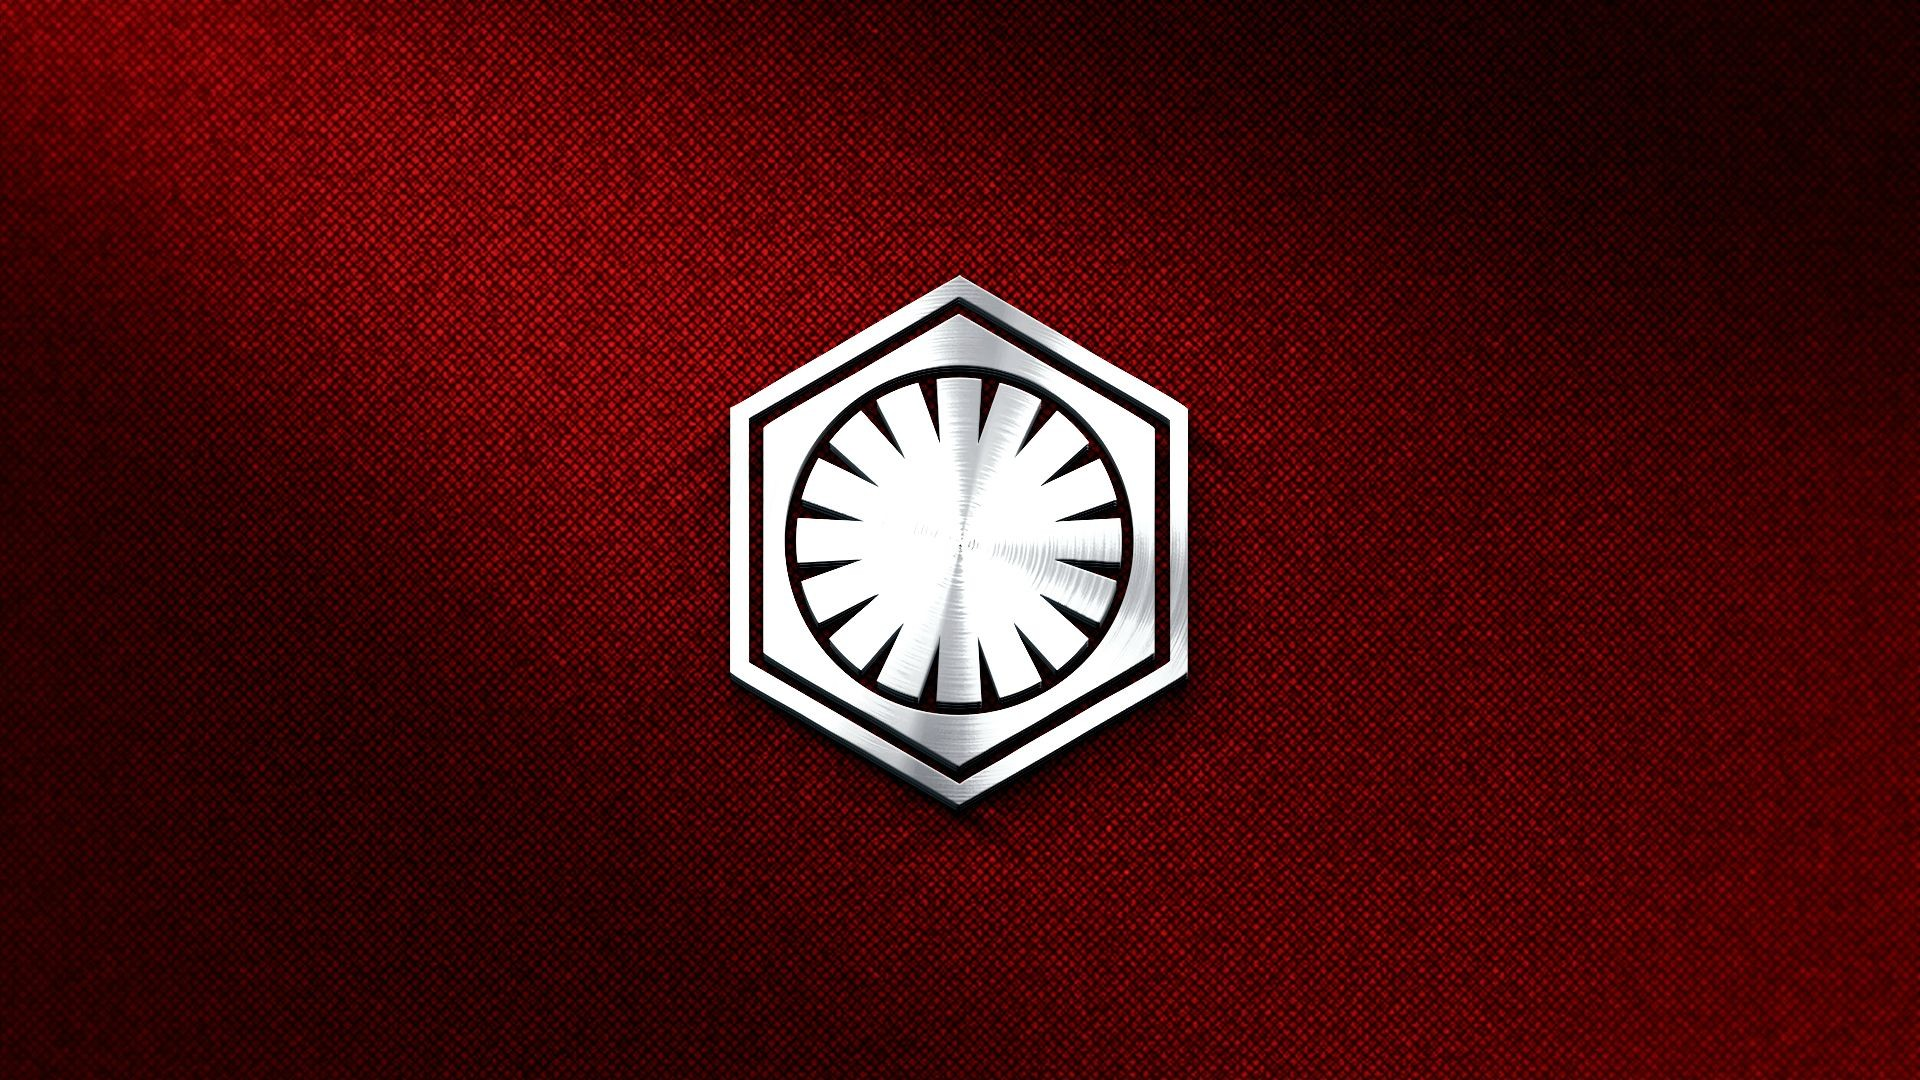 1920x1200 Rebel Alliance Bitcoin Download 3500x1557 General Star Wars